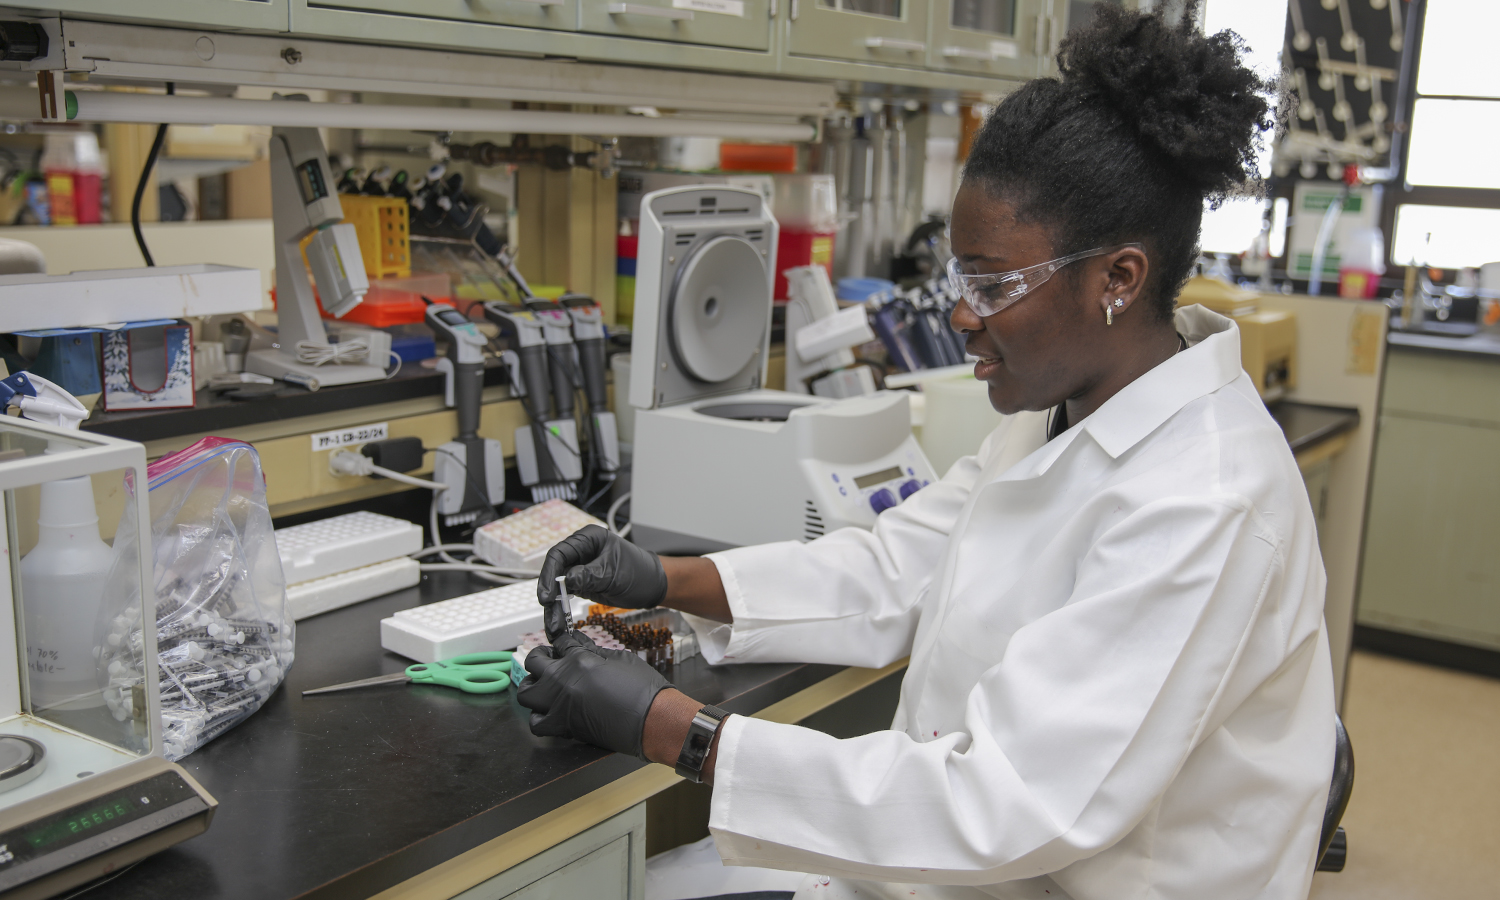 Kenisha Ross '19 conducts research on the antioxident properties of cherries with the U.S. Department of Agriculture for her summer research position located at the N.Y. State Agriculutral Experiment Station.